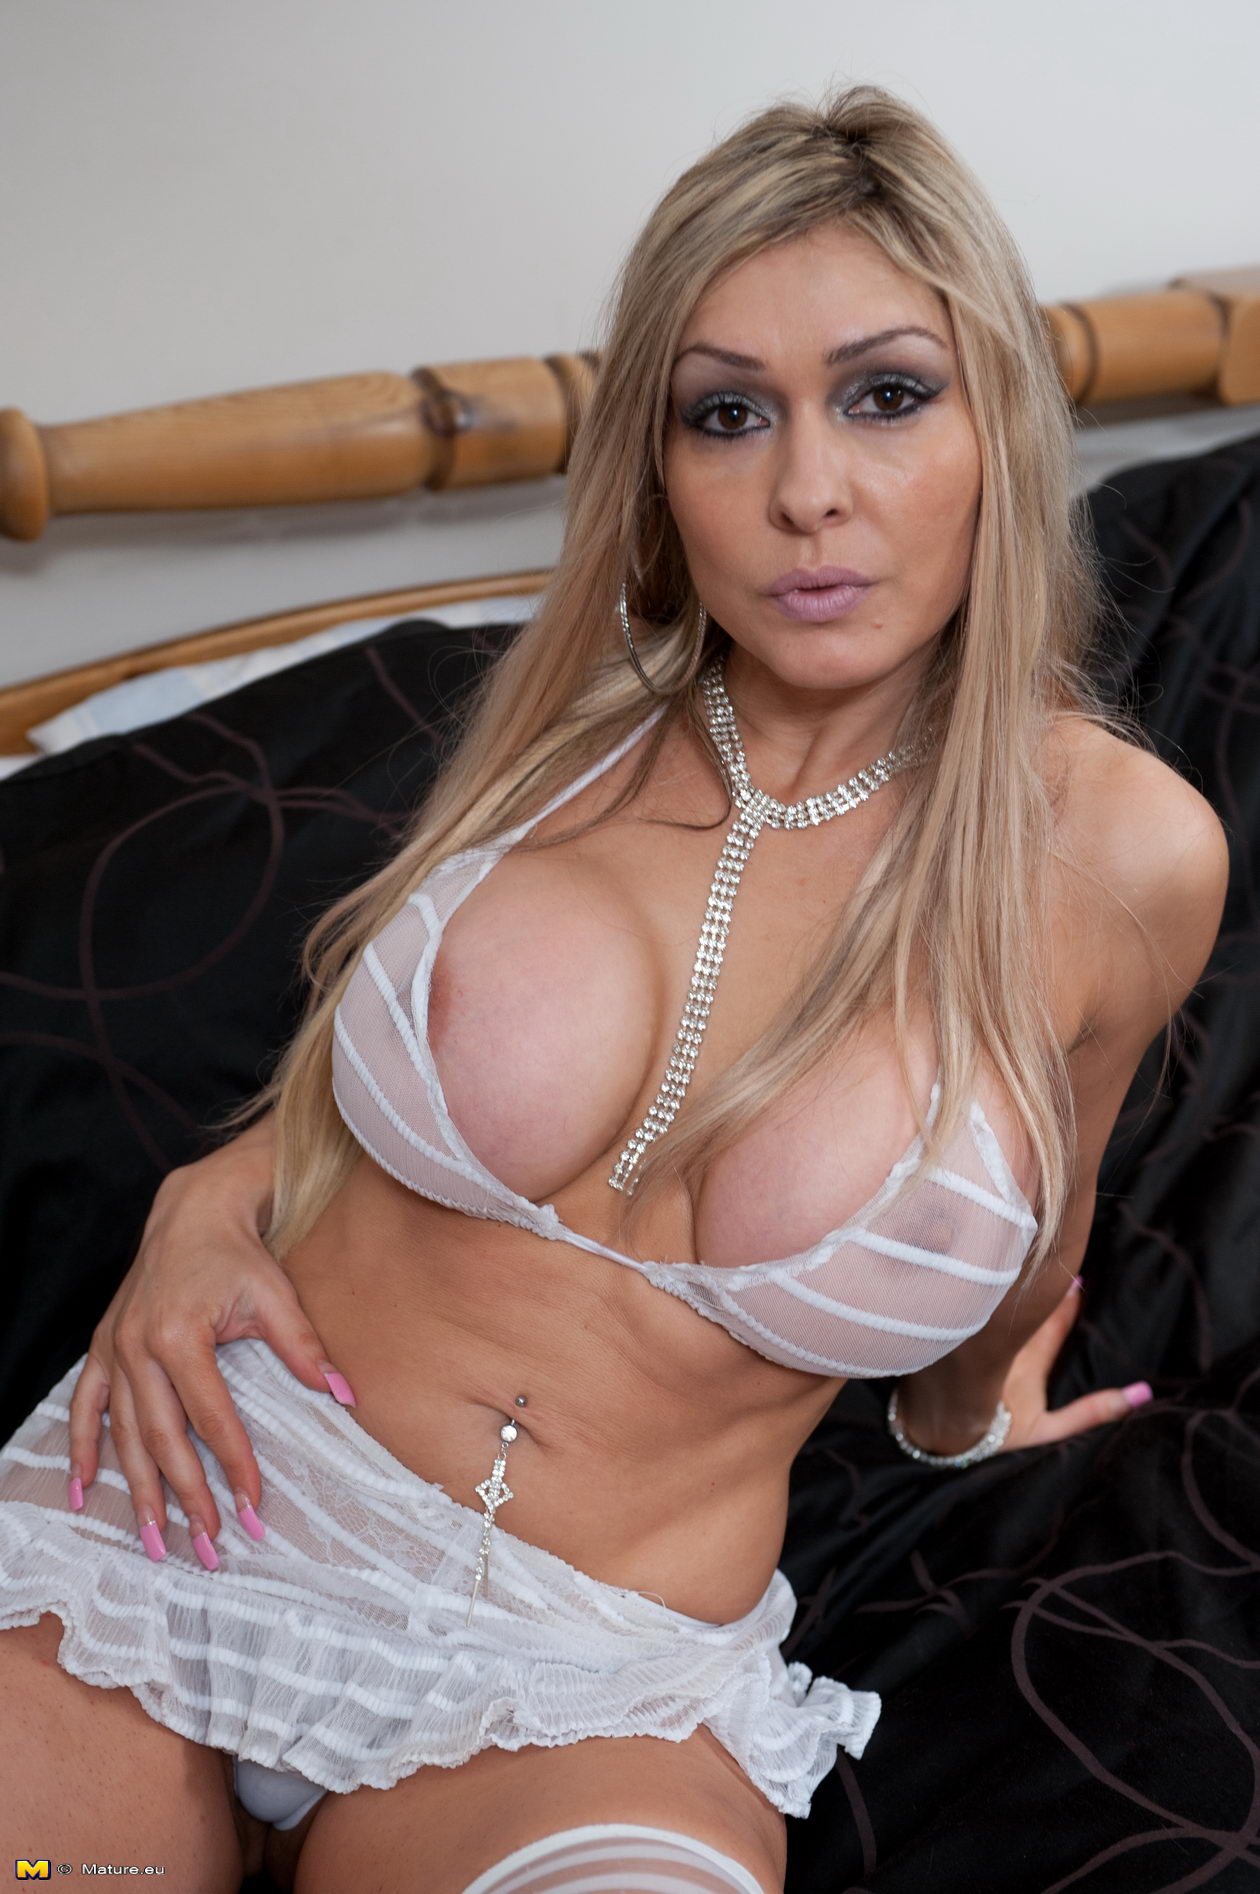 Milf With Hot Body